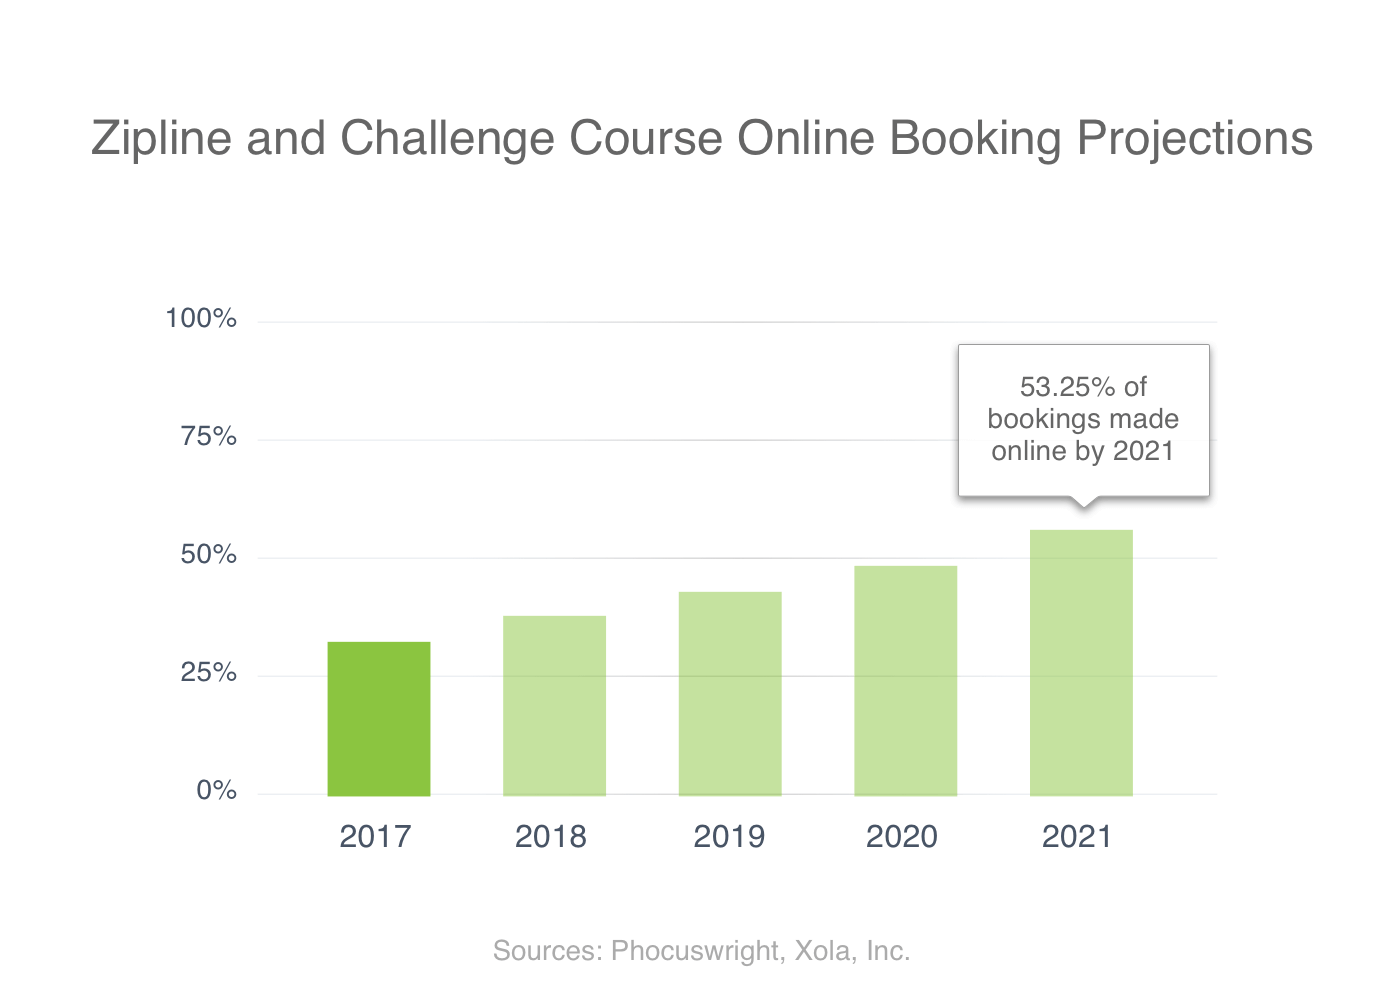 Zipline and Challenge Course Online Booking Projections Xola Phocuswright 2017